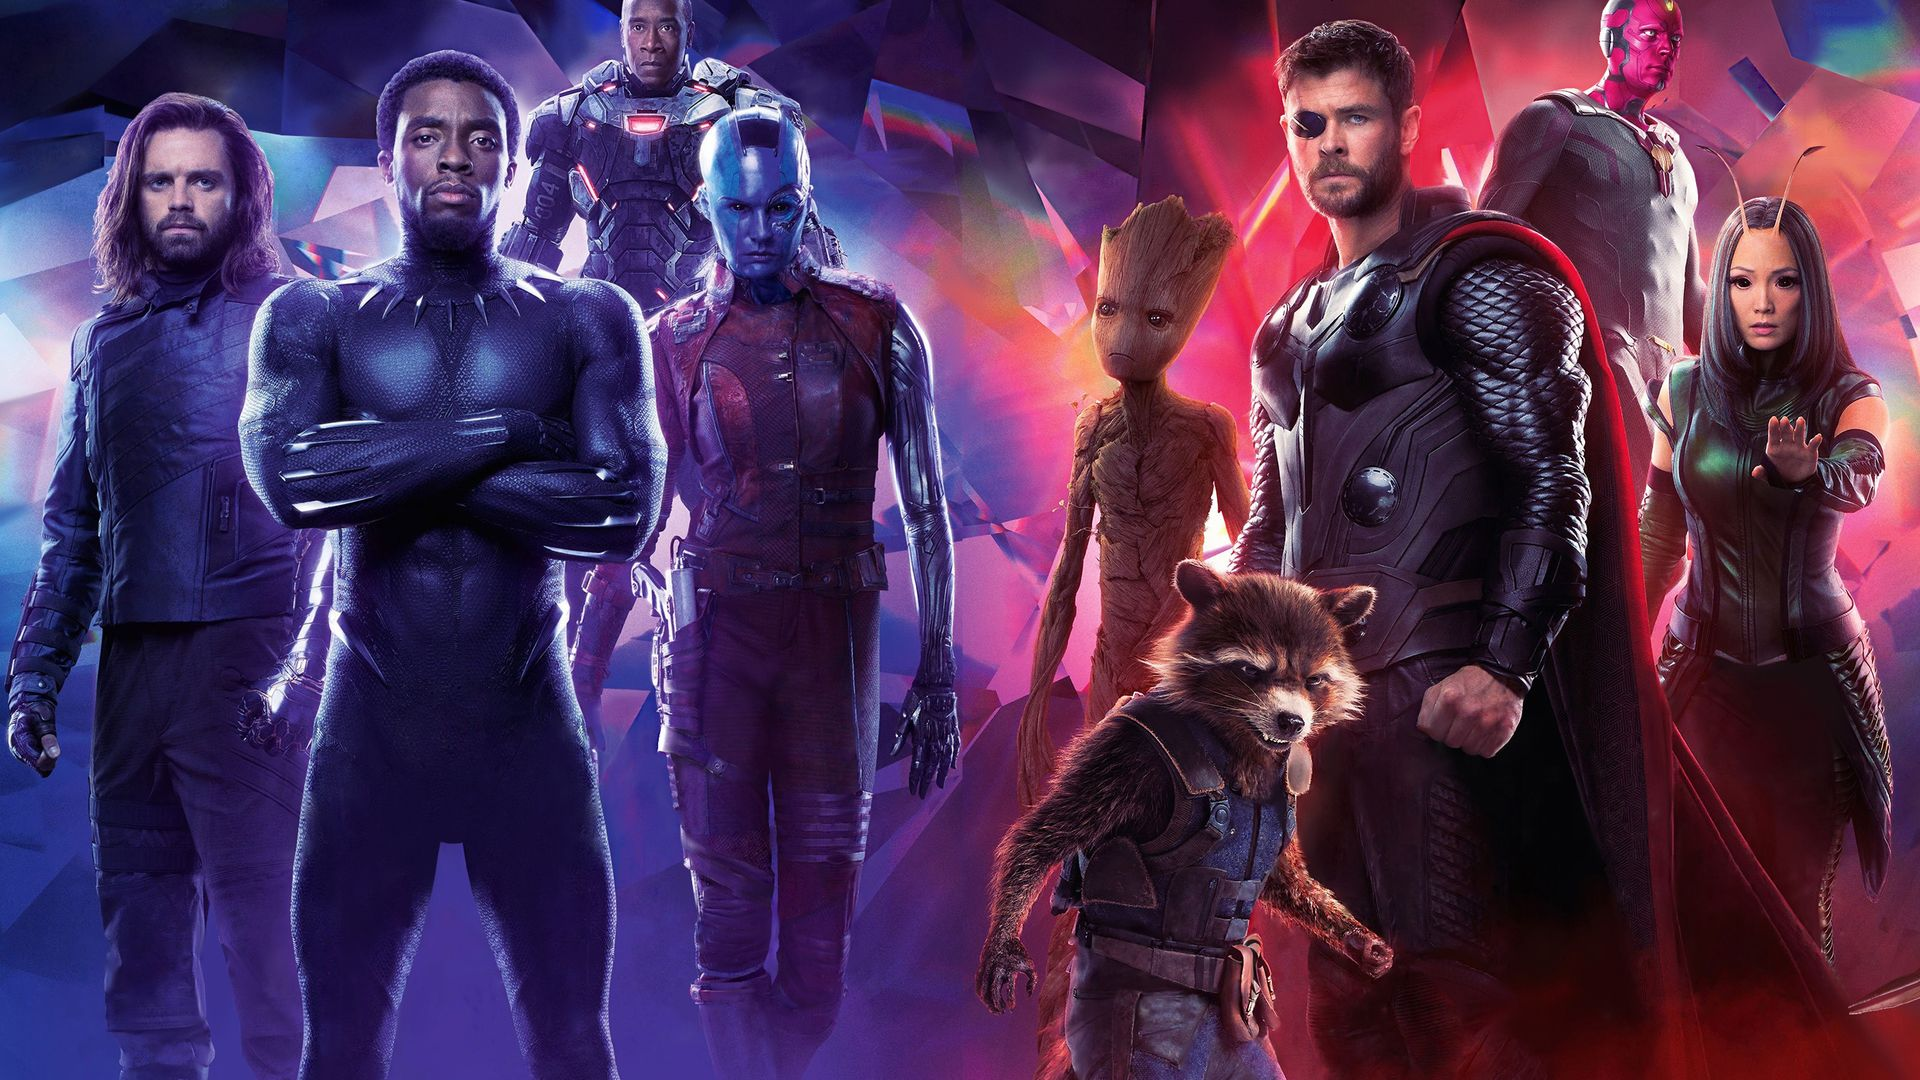 flick,vison,and,movies,moving picture,blackamoor,black person,panthera onca,panther,coloured,cougar,groot,black,picture show,avengers : infinity war,felis onca,thor,film,more